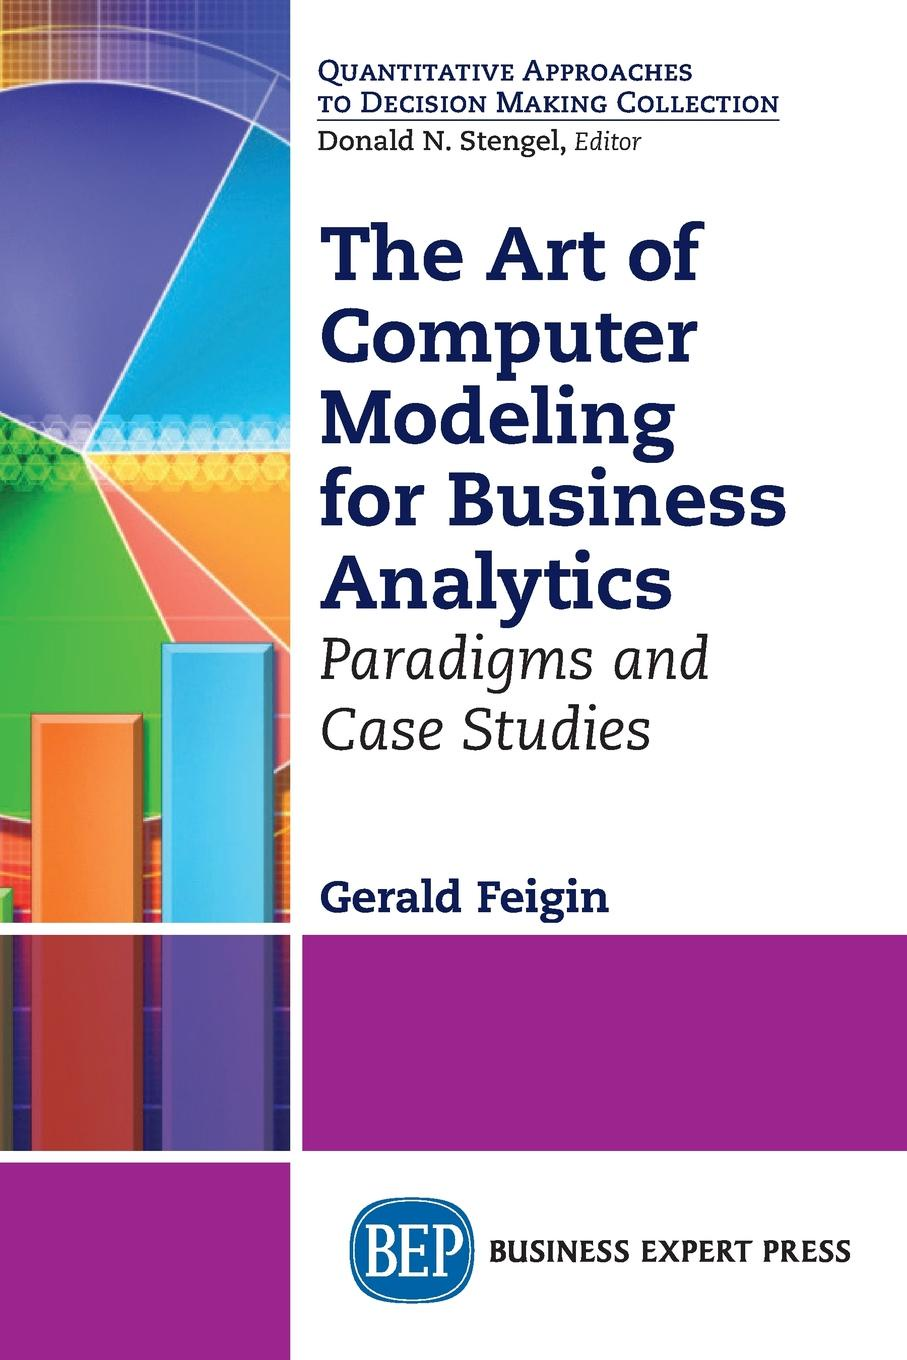 Gerald Feigin The Art of Computer Modeling for Business Analytics. Paradigms and Case Studies michael roberto a unlocking creativity how to solve any problem and make the best decisions by shifting creative mindsets